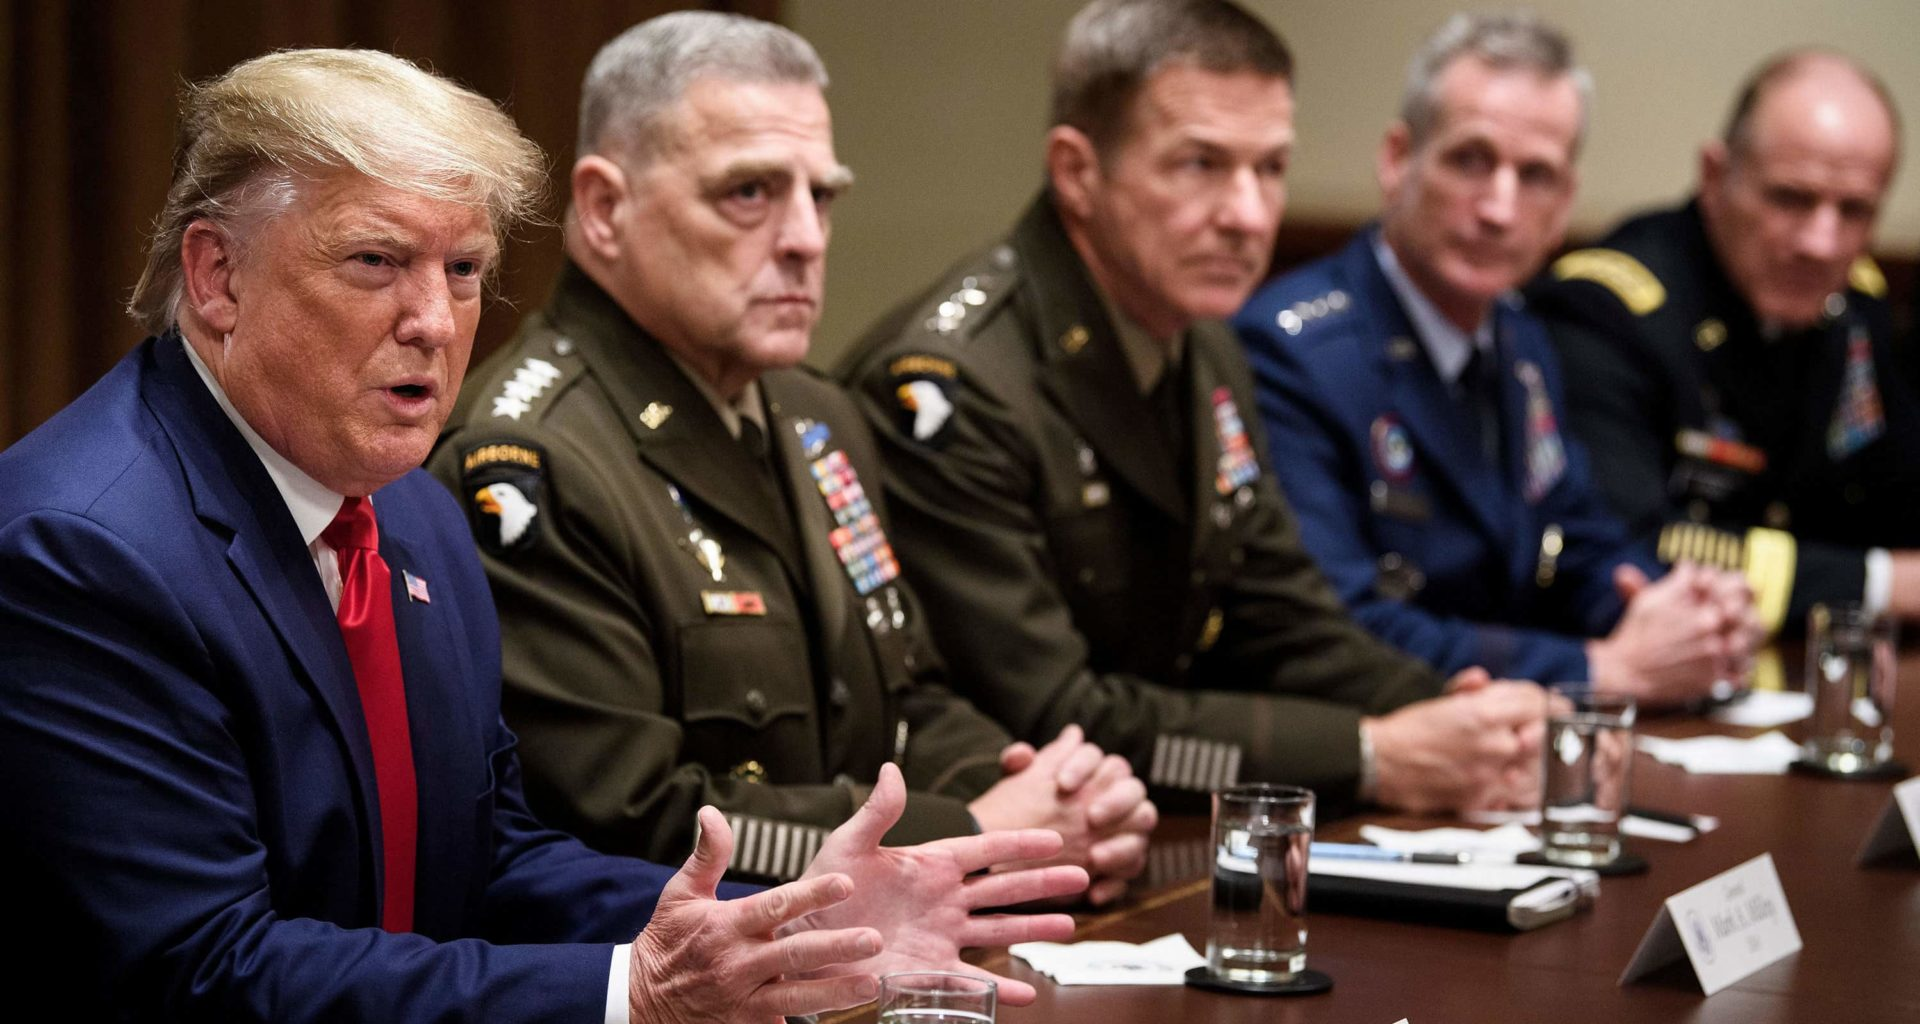 Leak Trump Threatens To Send U.S. Troops Into Mexico